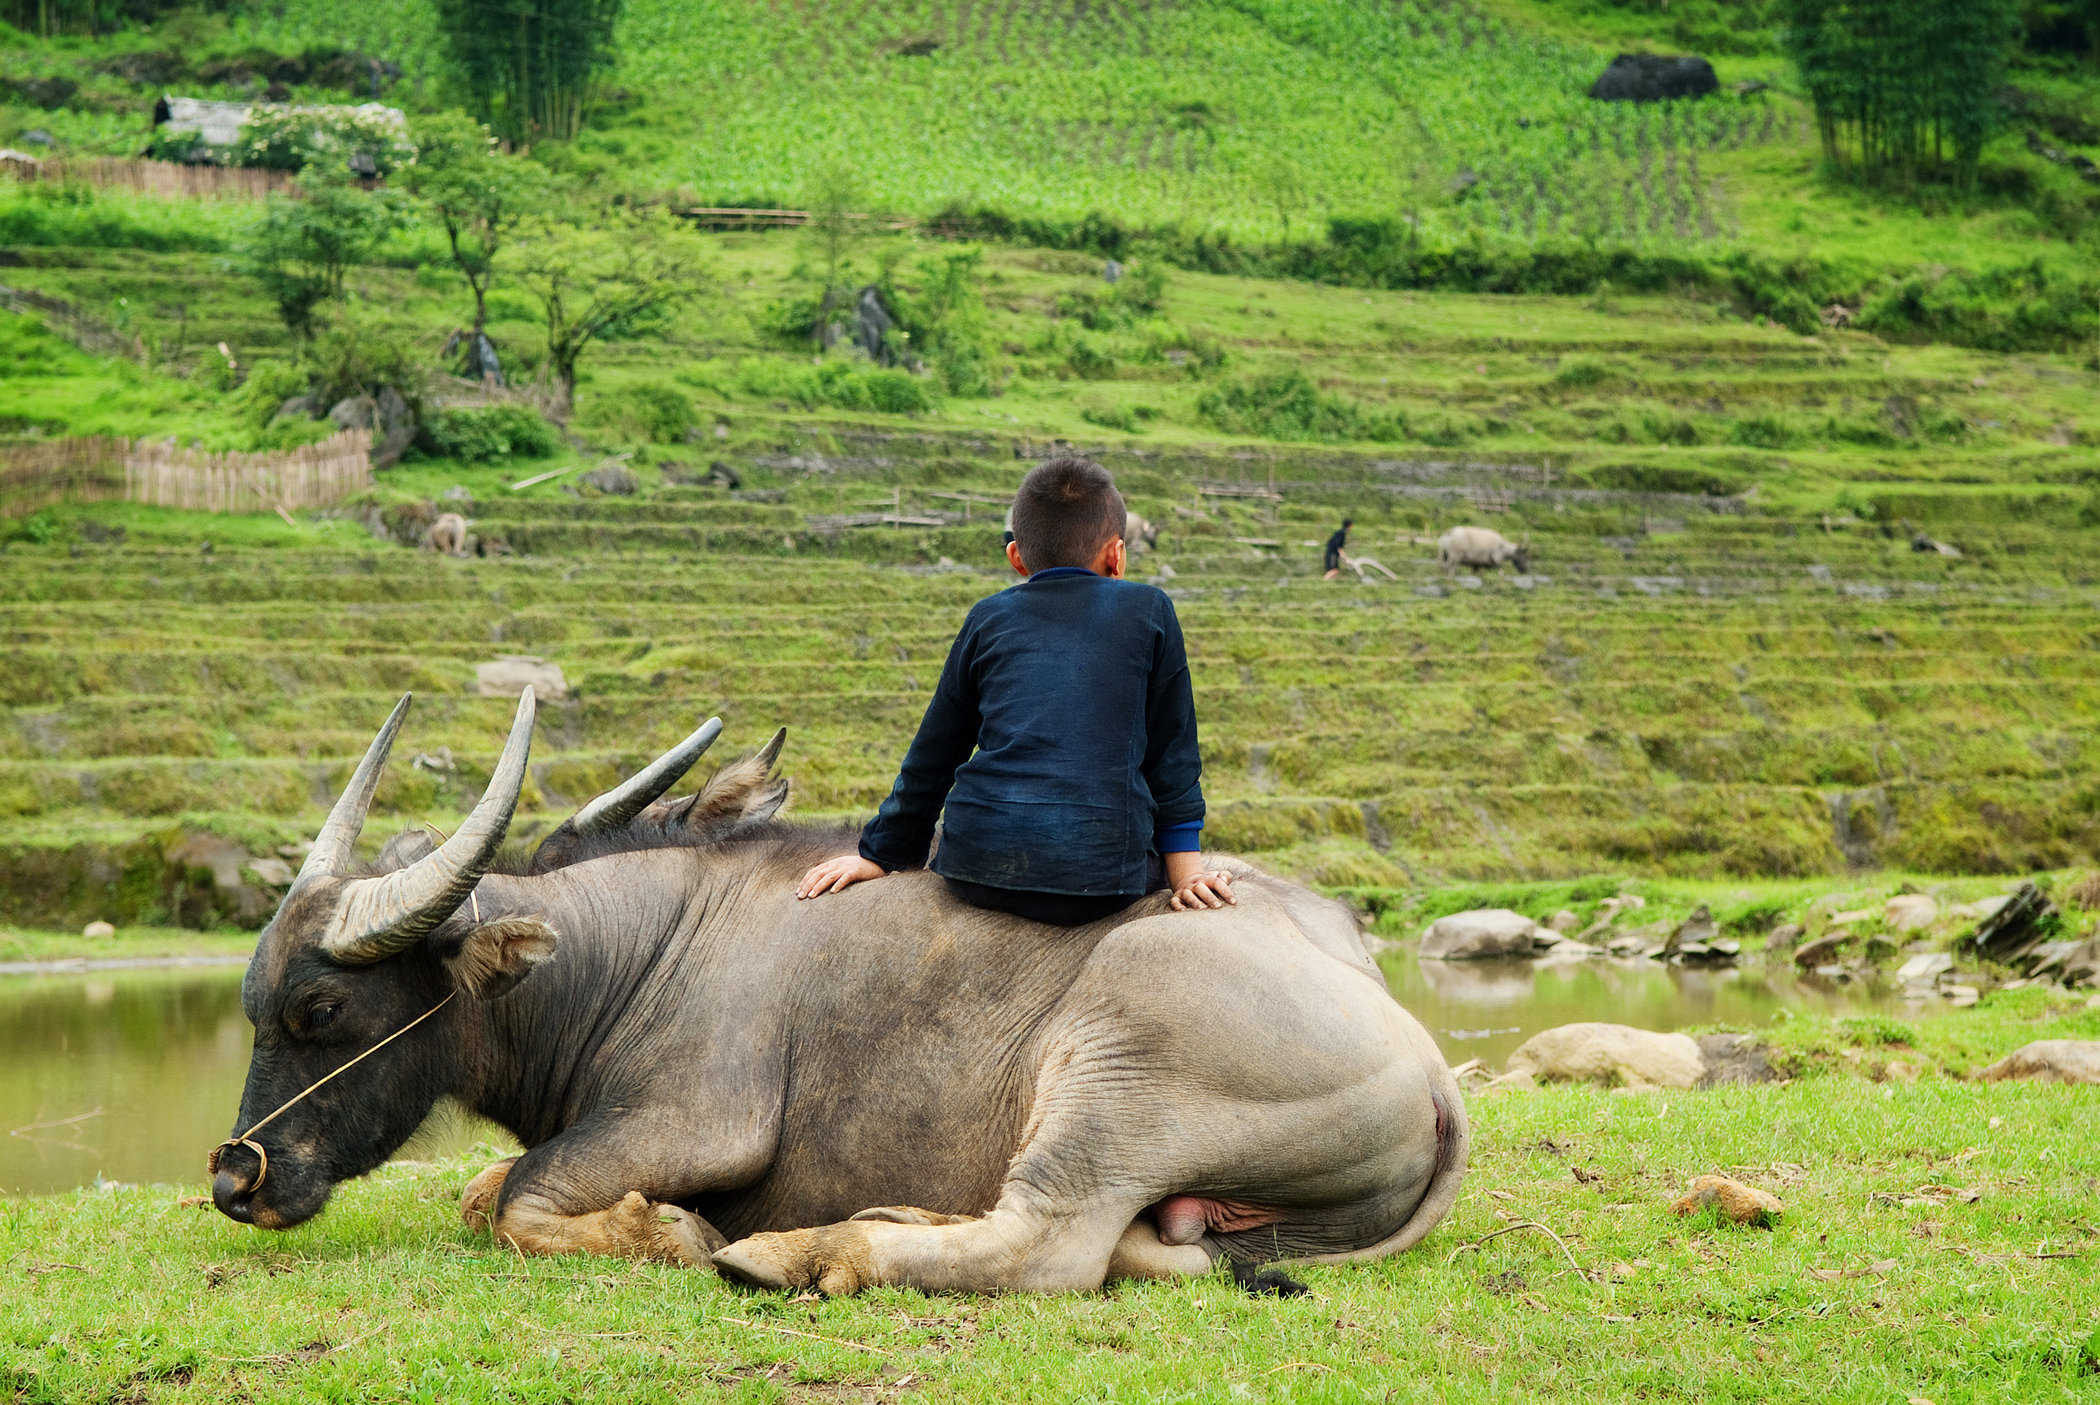 Child on Water Buffalo